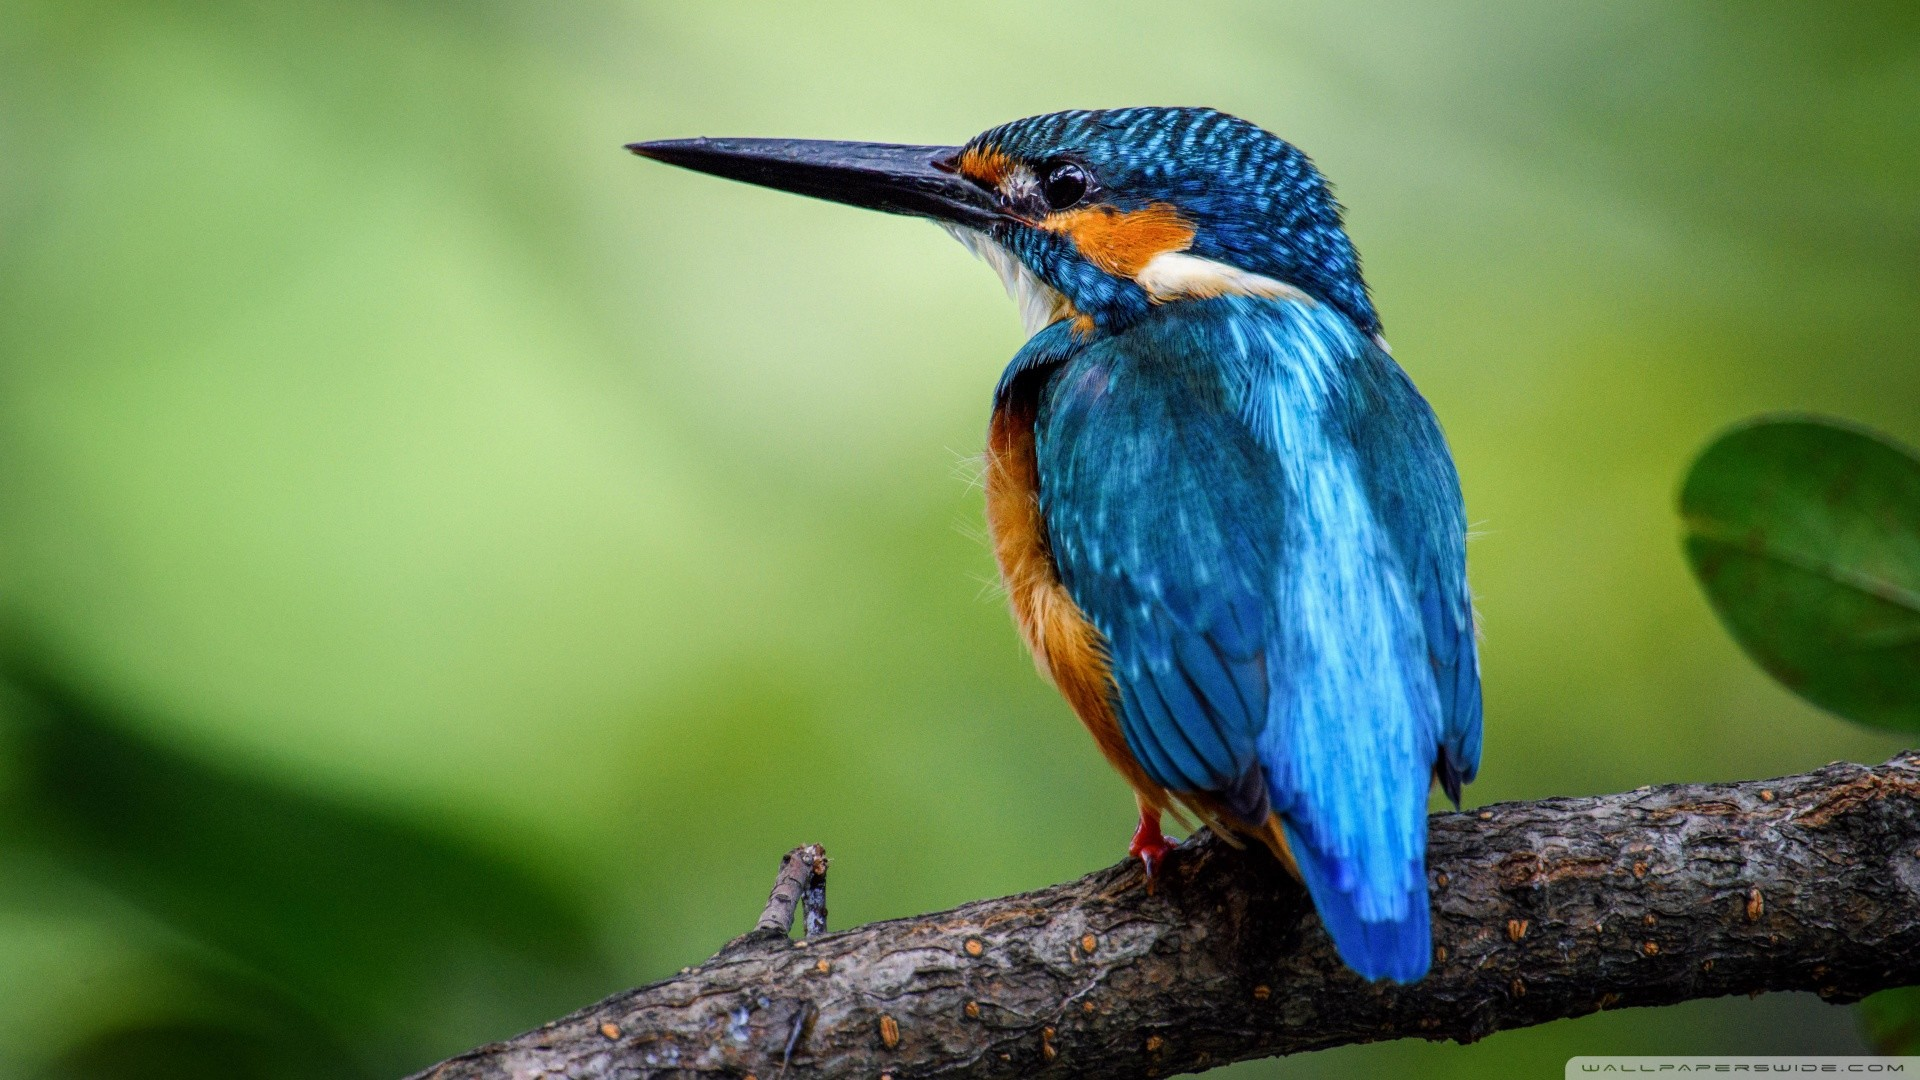 Kingfisher Wallpapers: HD Animal Wallpaper 1920x1080 (73+ Images